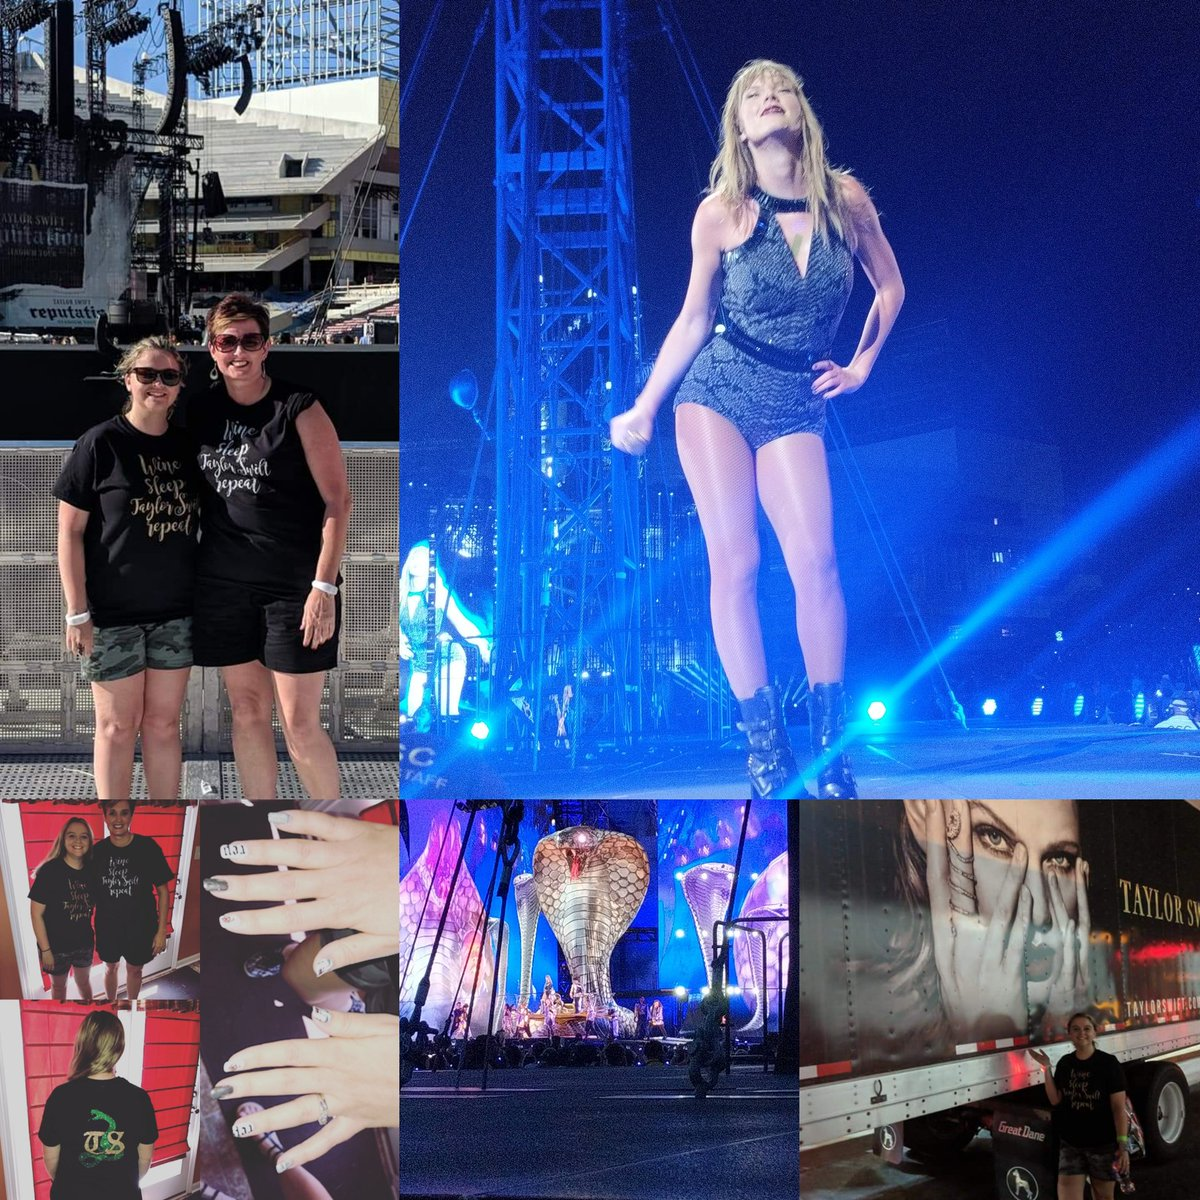 Take me back to June 30th!! I miss the Rep Tour and @taylorswift13 @taylornation13